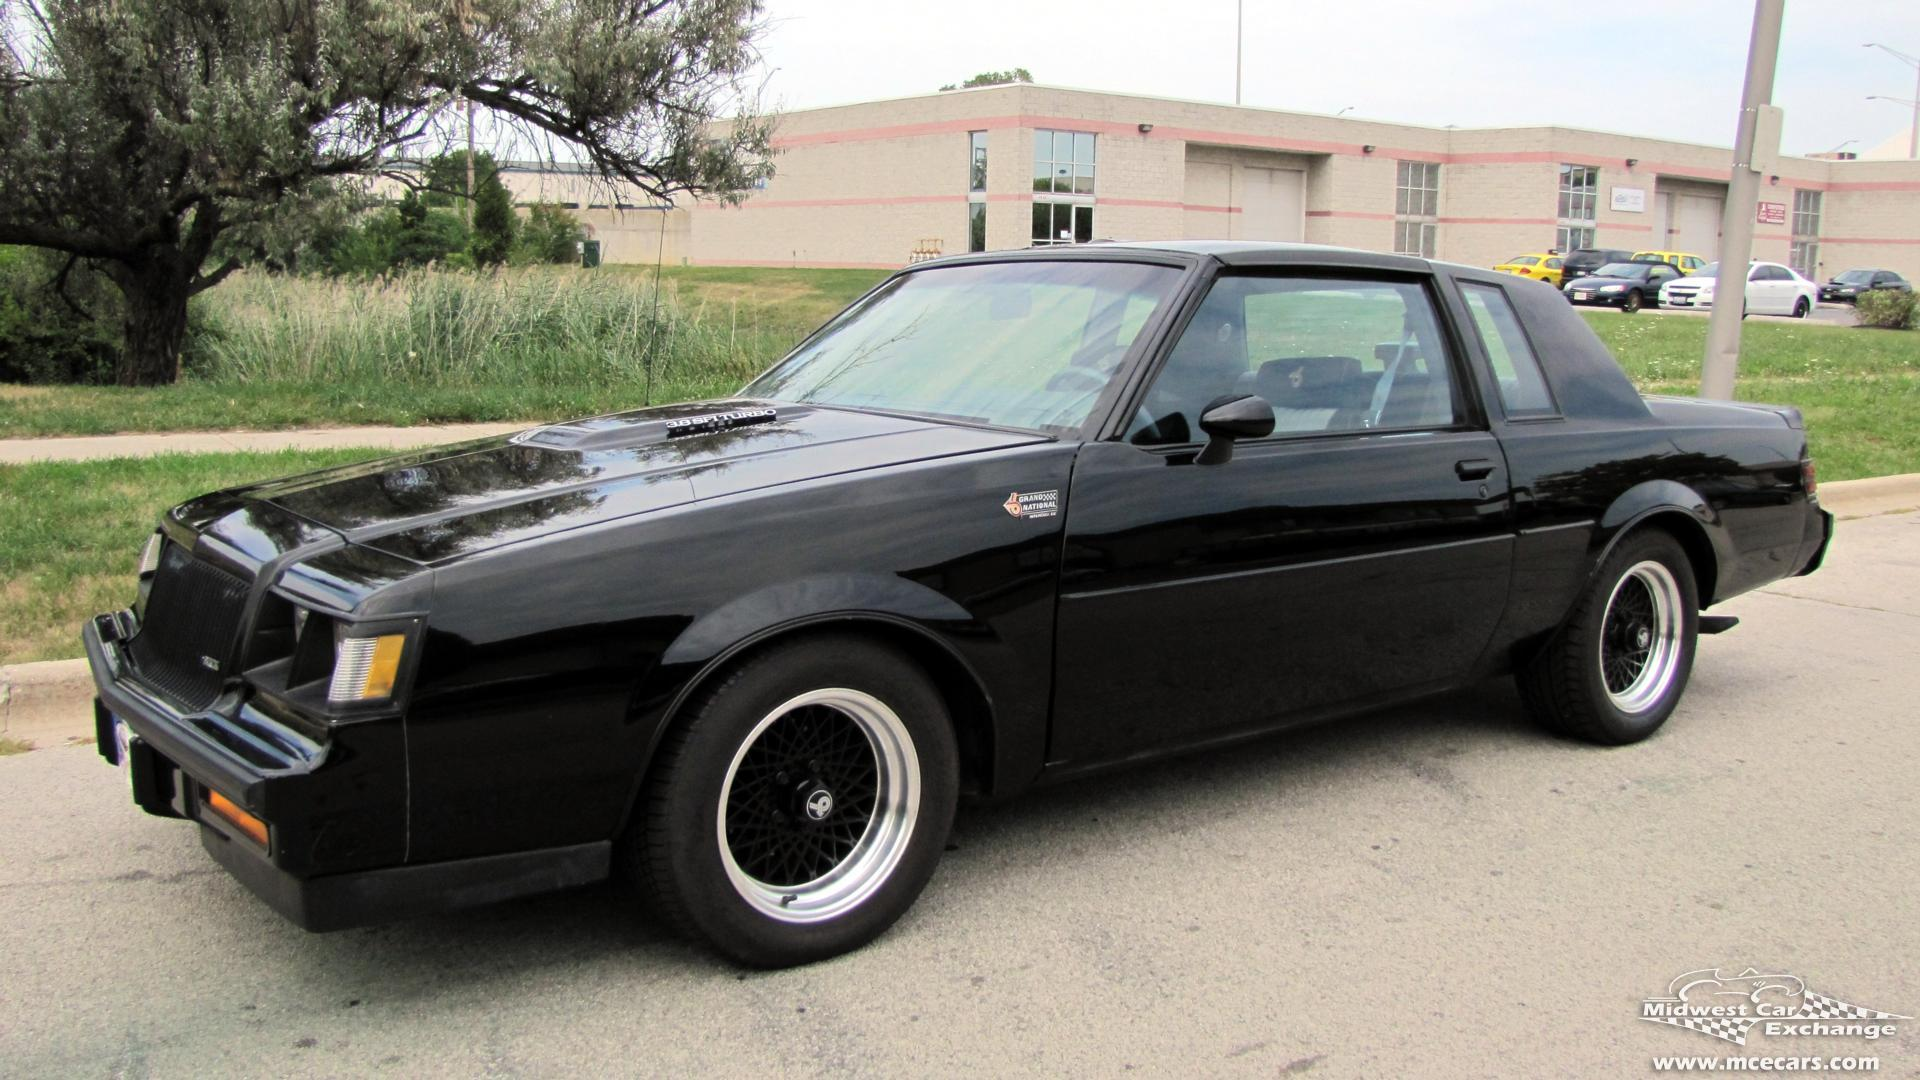 1987 Buick GNX, Muscle Car